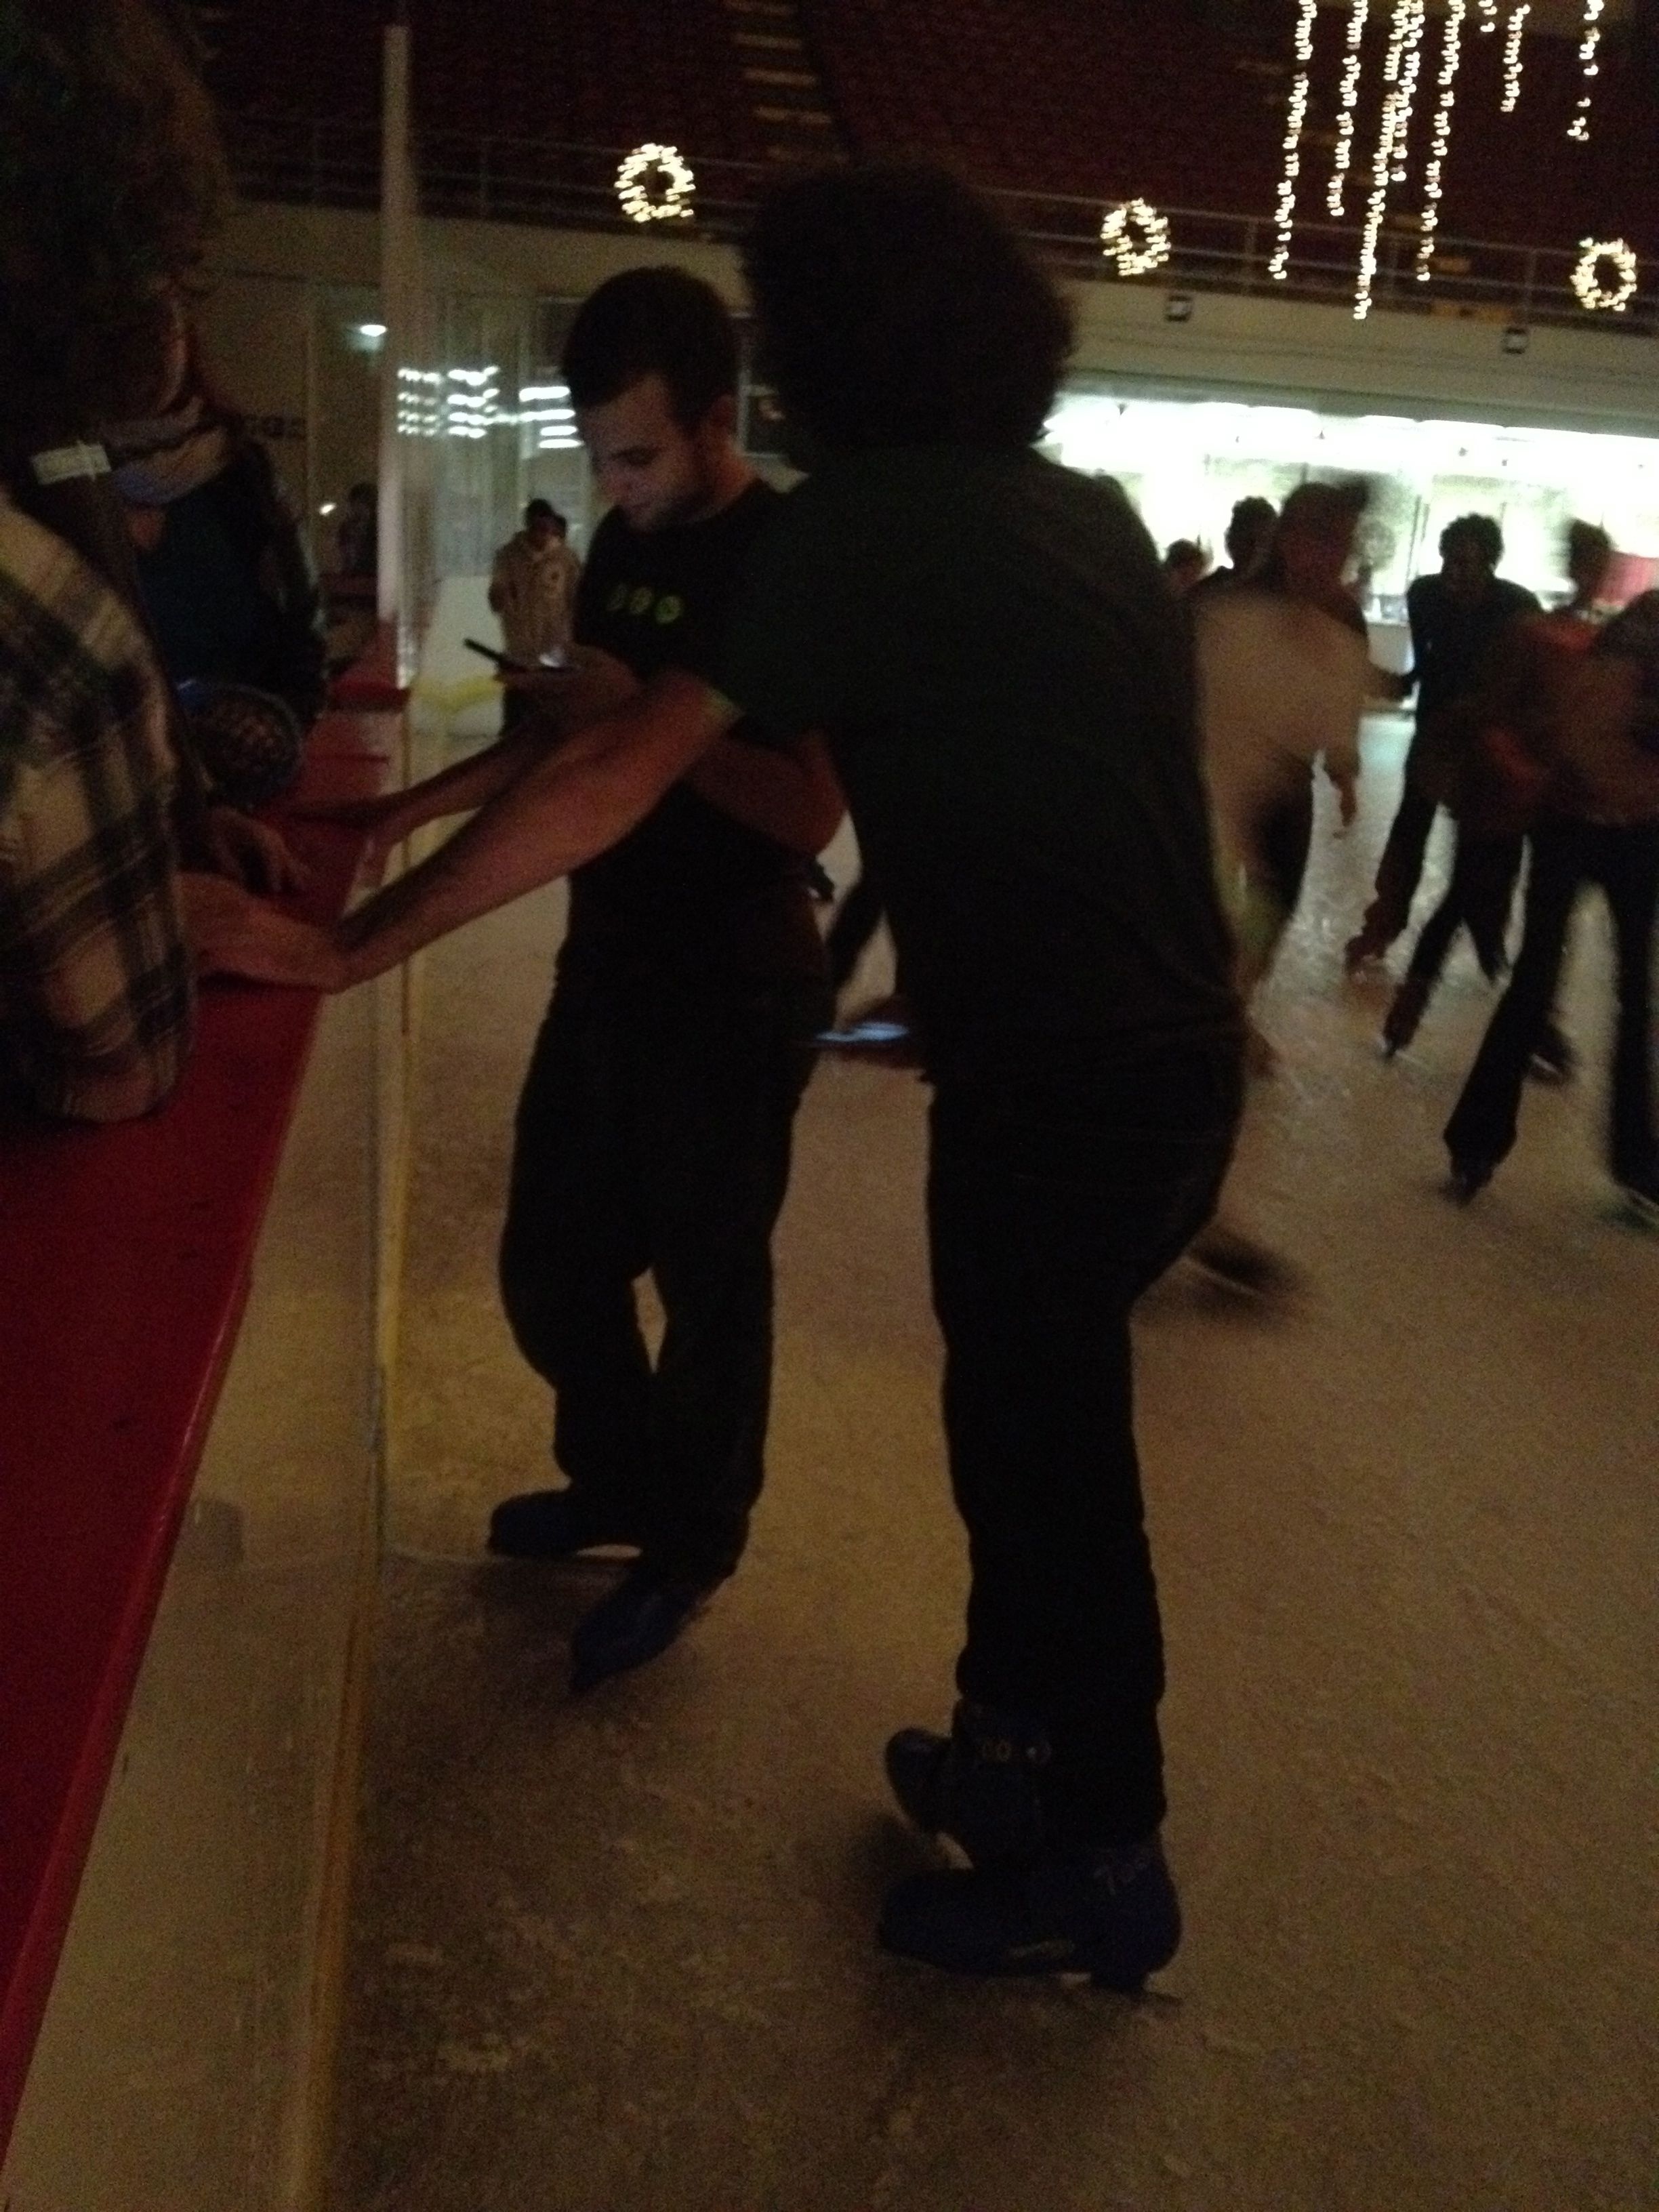 Nacin and Koop on skates